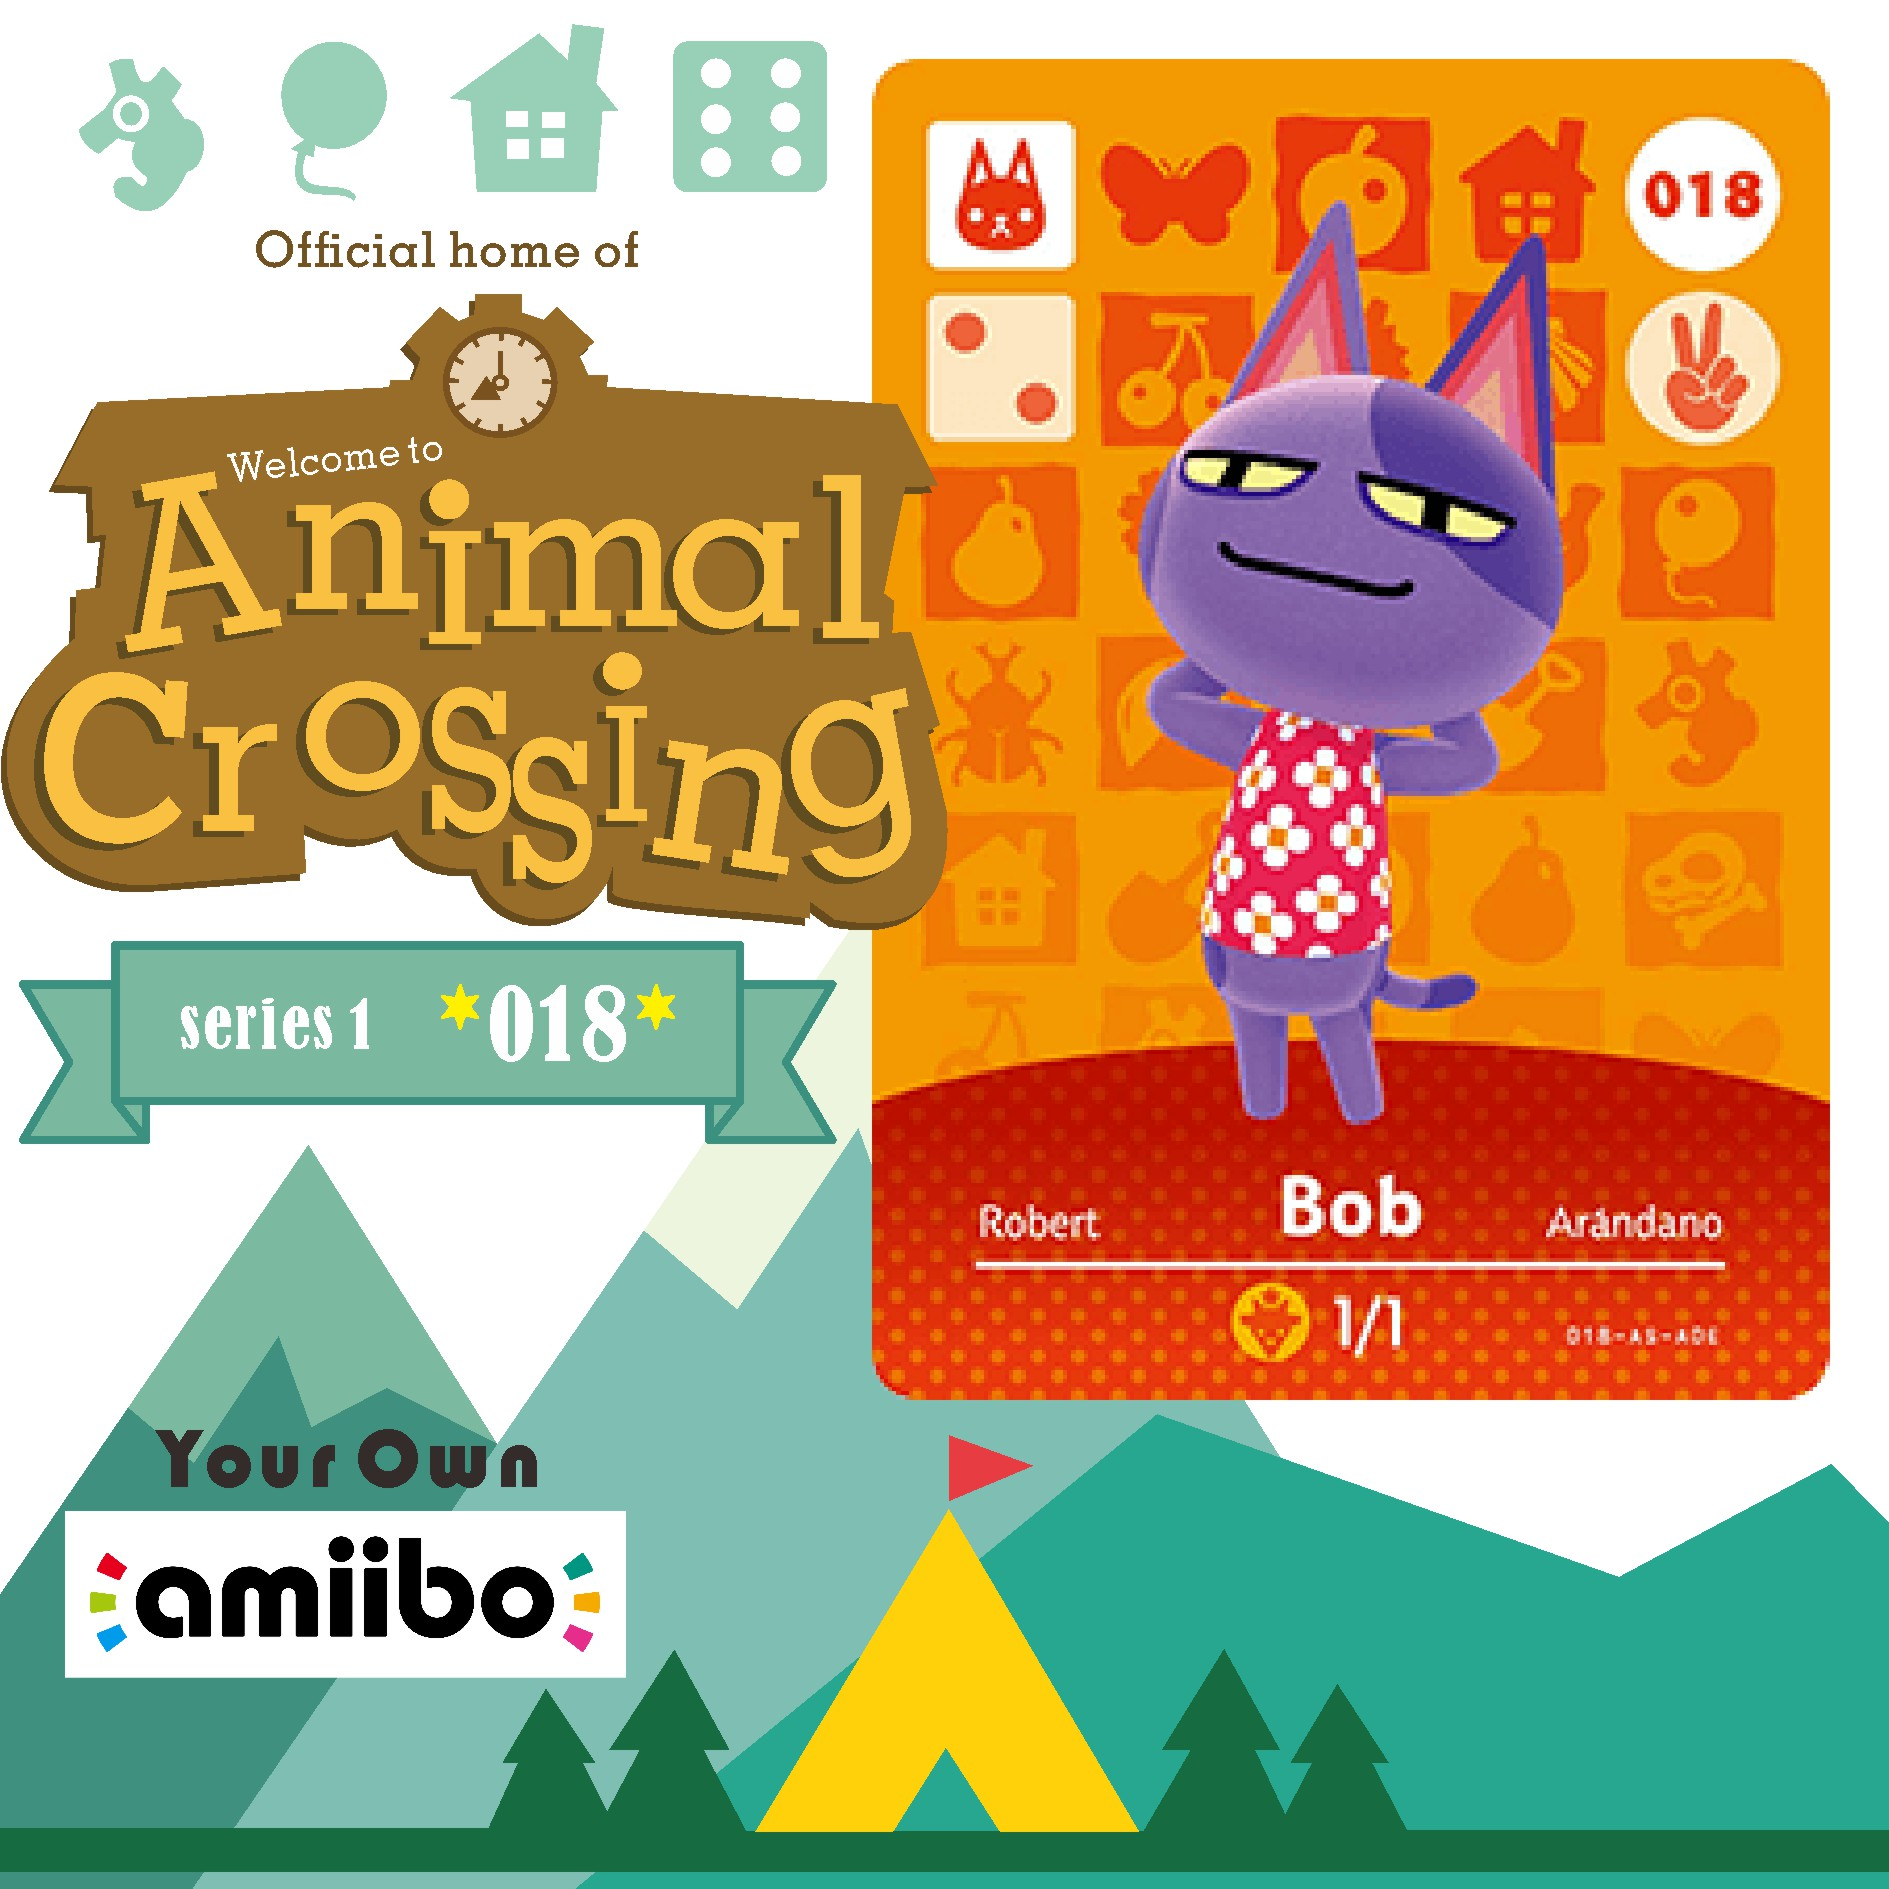 018 Bob Animal Crossing Bob Amiibo Animal Crossing Switch Rv Welcome Amiibo Villager New Horizons Amiibo Card Gift Cross Card